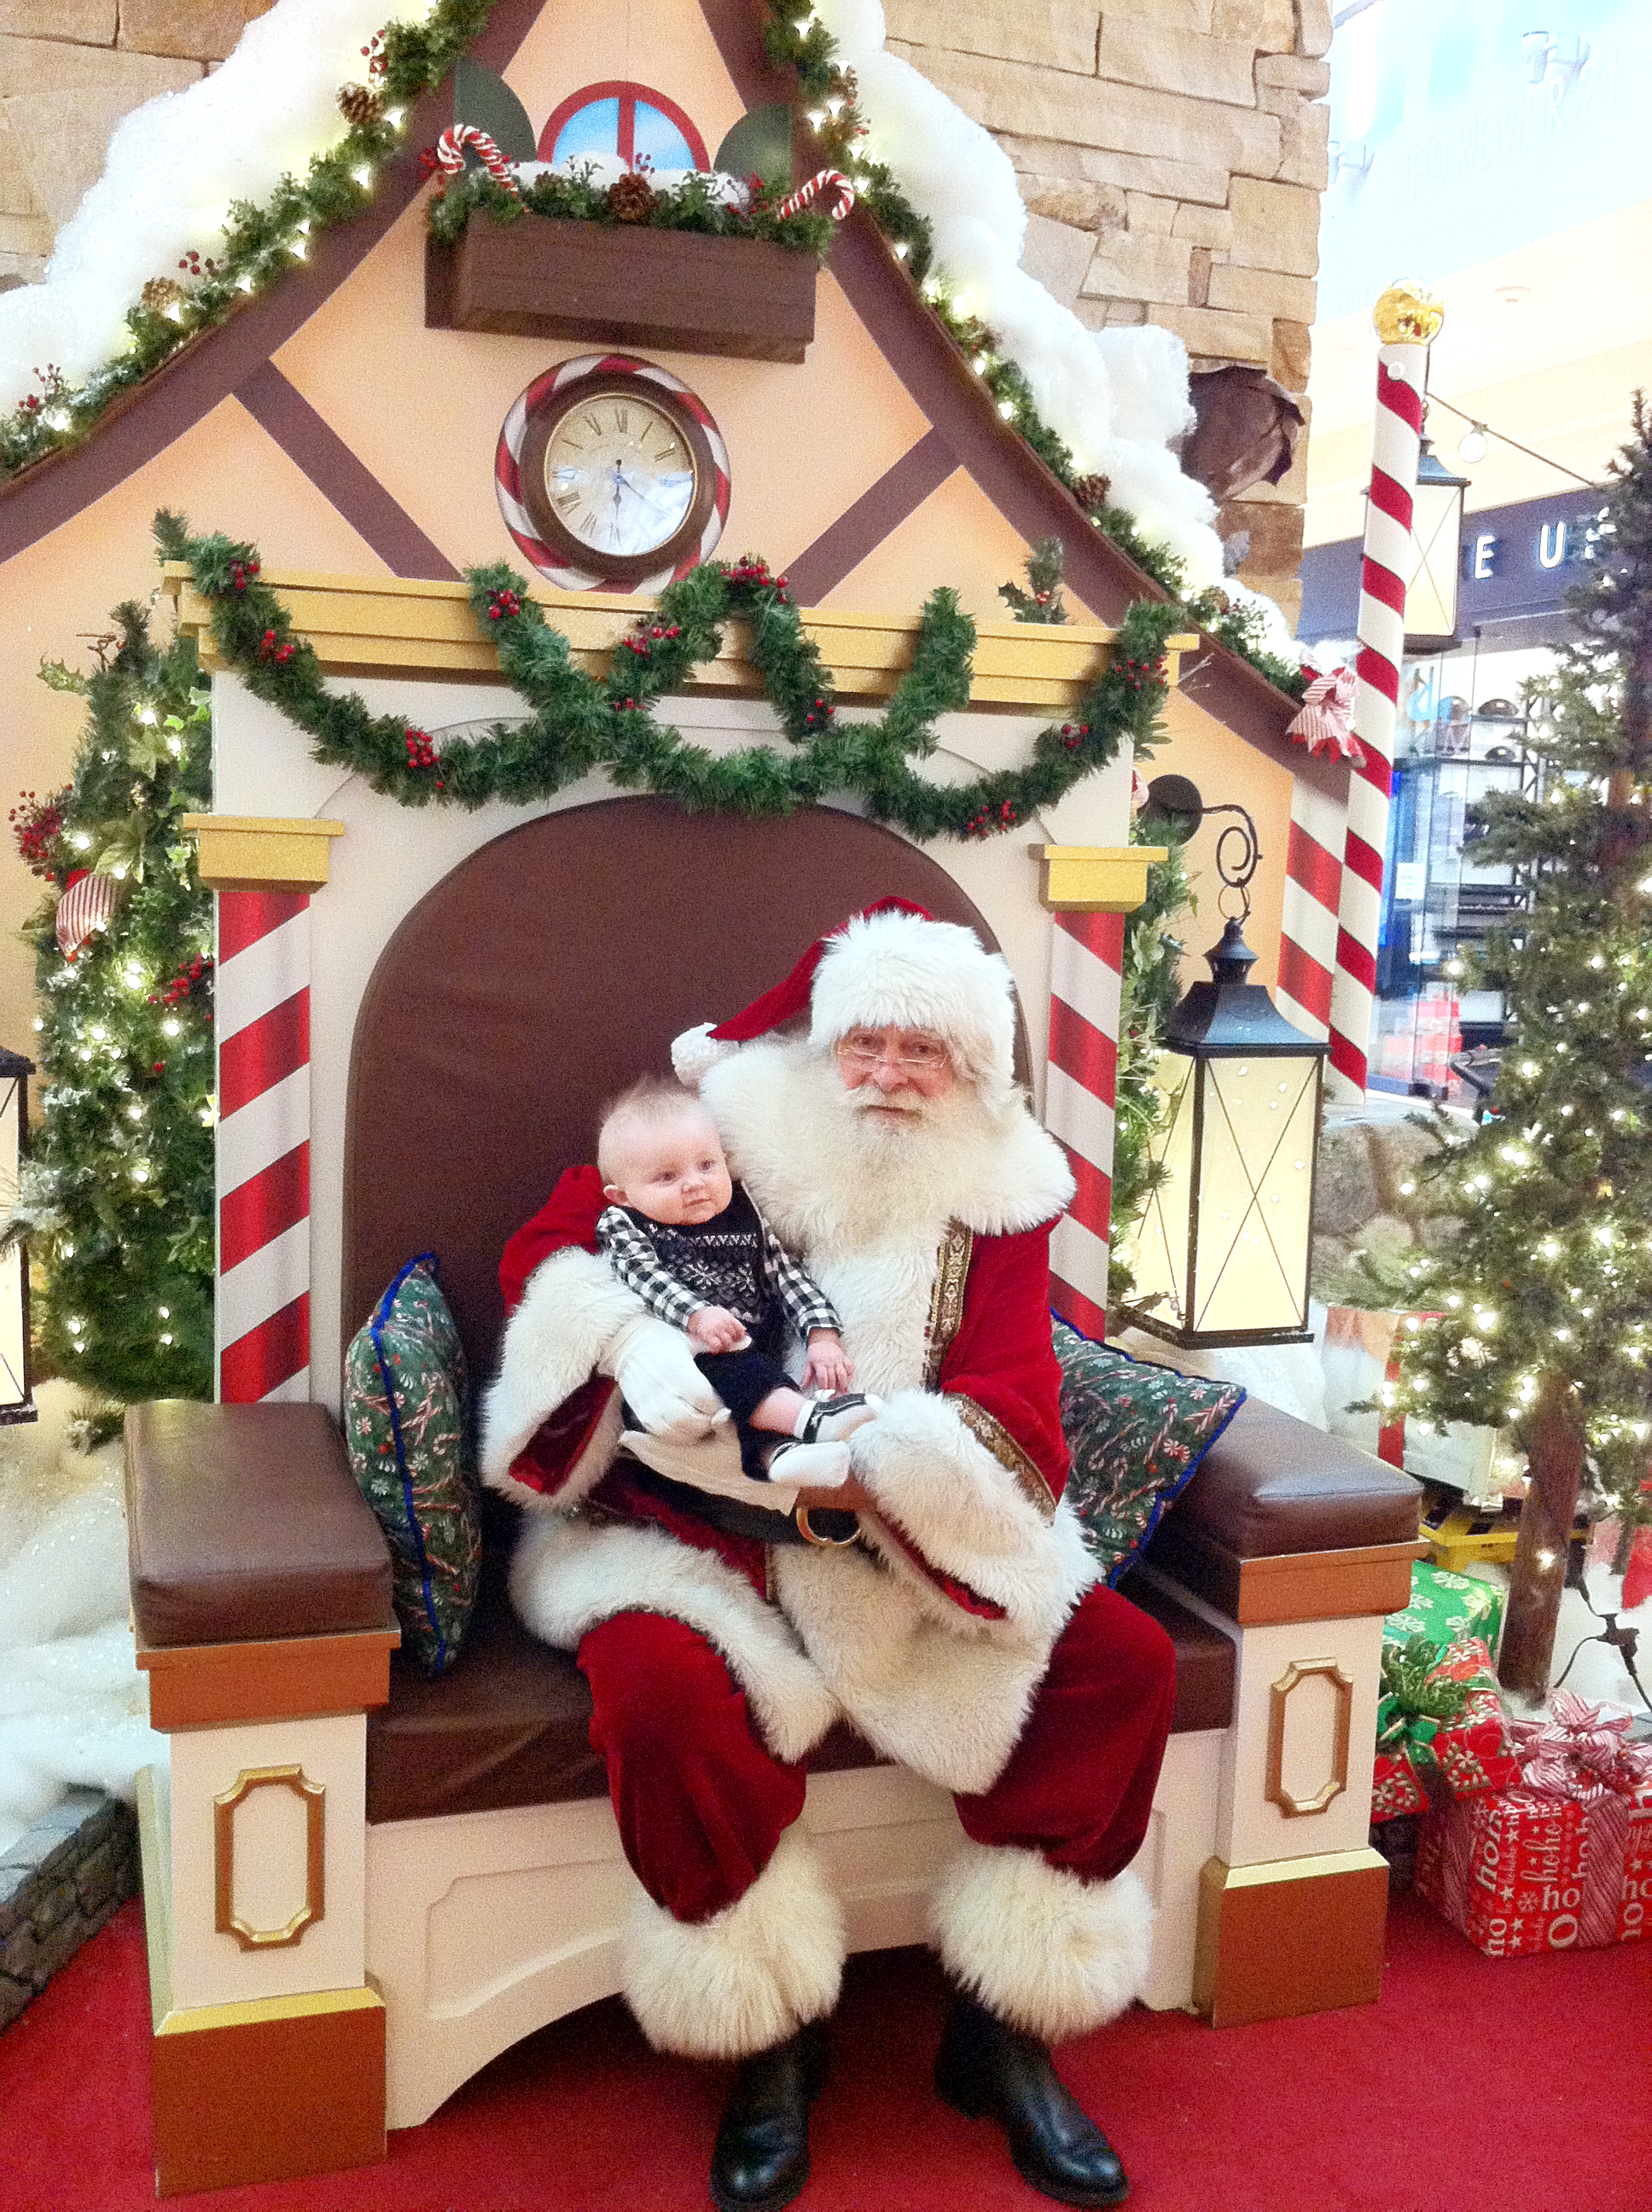 Santa S Pushing Christmas With Early Arrival At Park